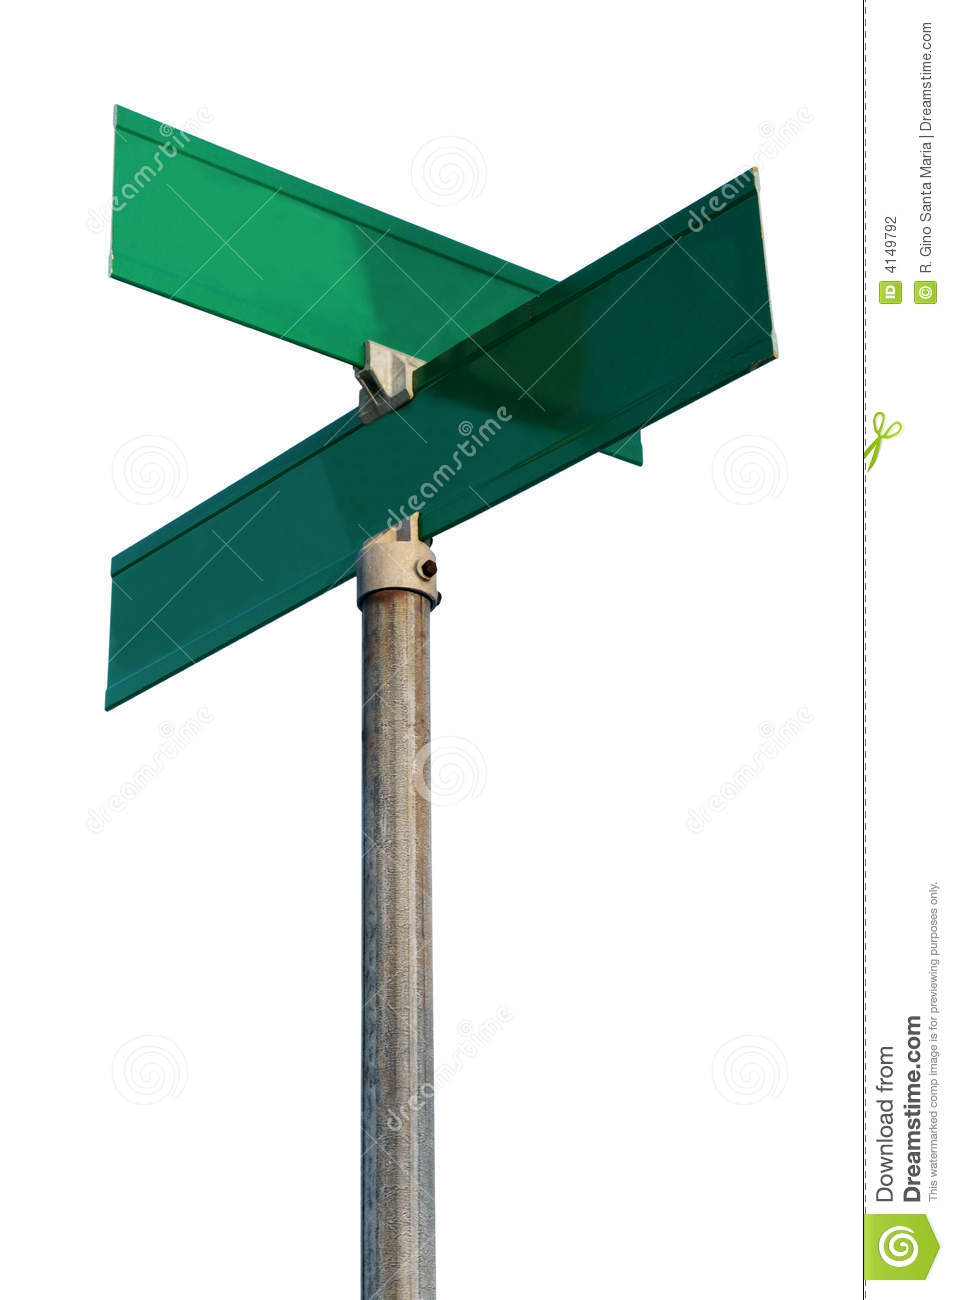 empty street signs stock photo image of intersection